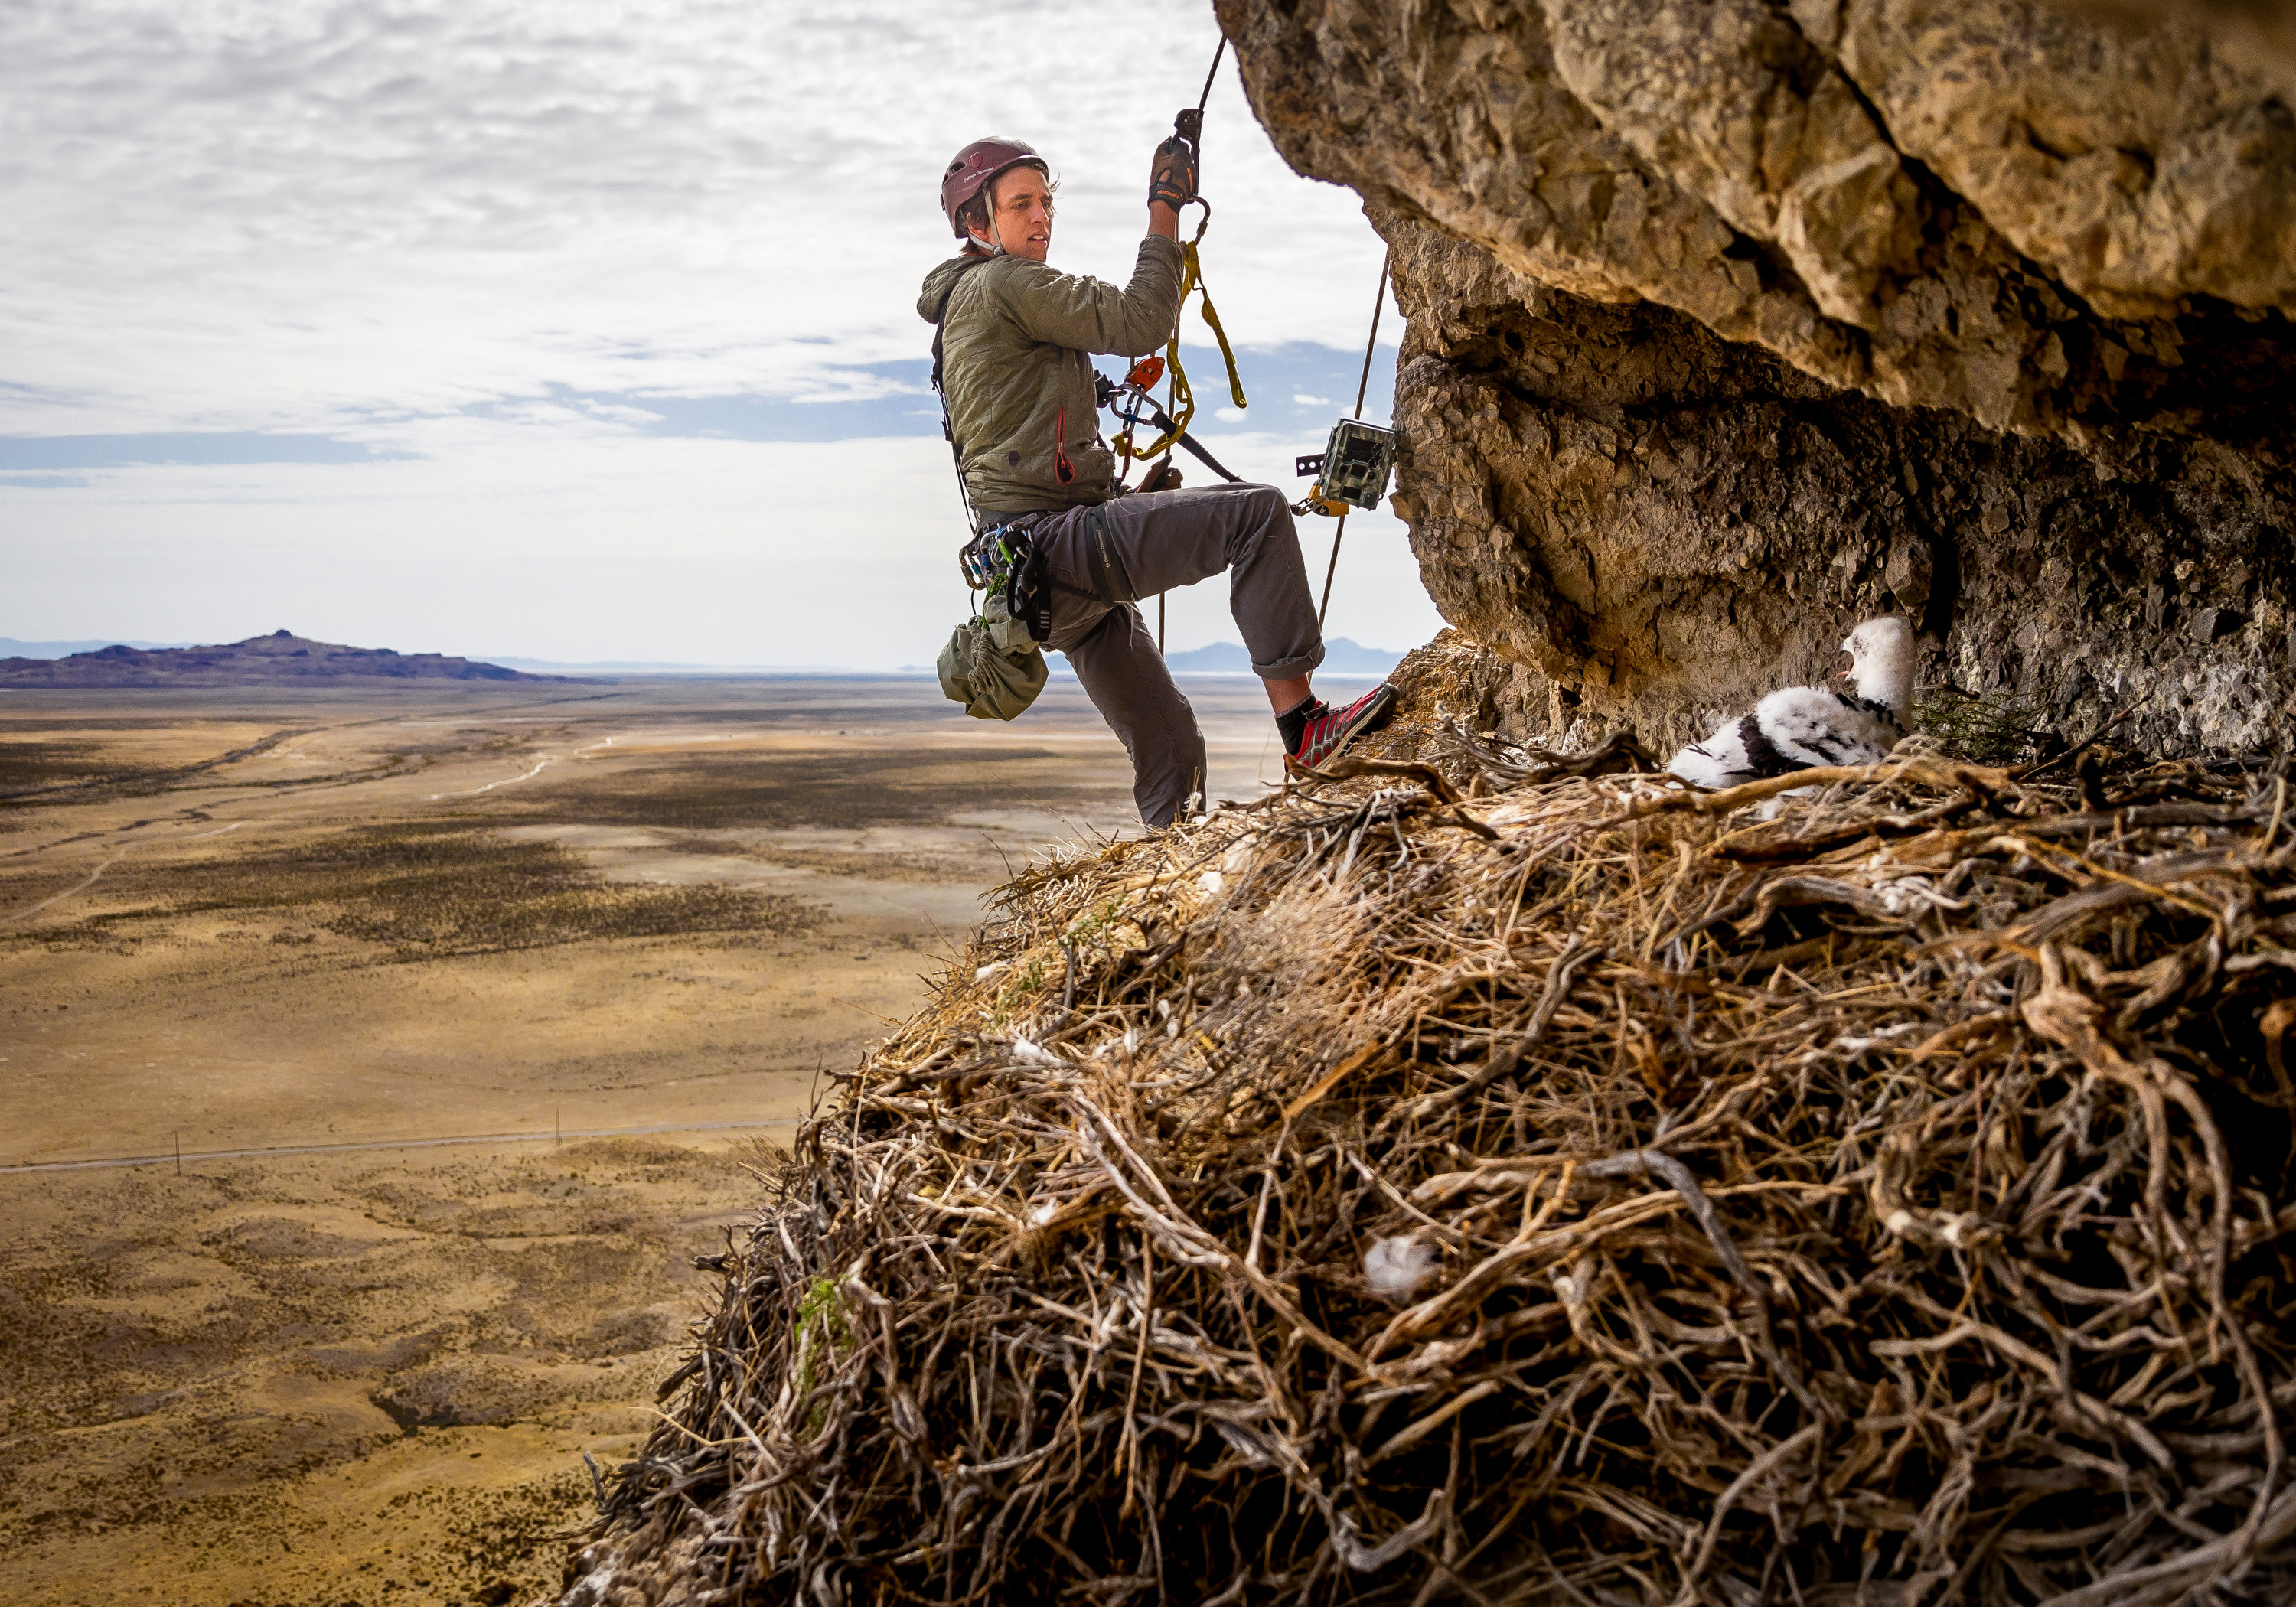 Hawkwatch International field biologist Max Carlin returns a golden eagle nestling to its nest after his team collected samples and data from it in a remote area of Box Elder County on Thursday, May 20, 2021.